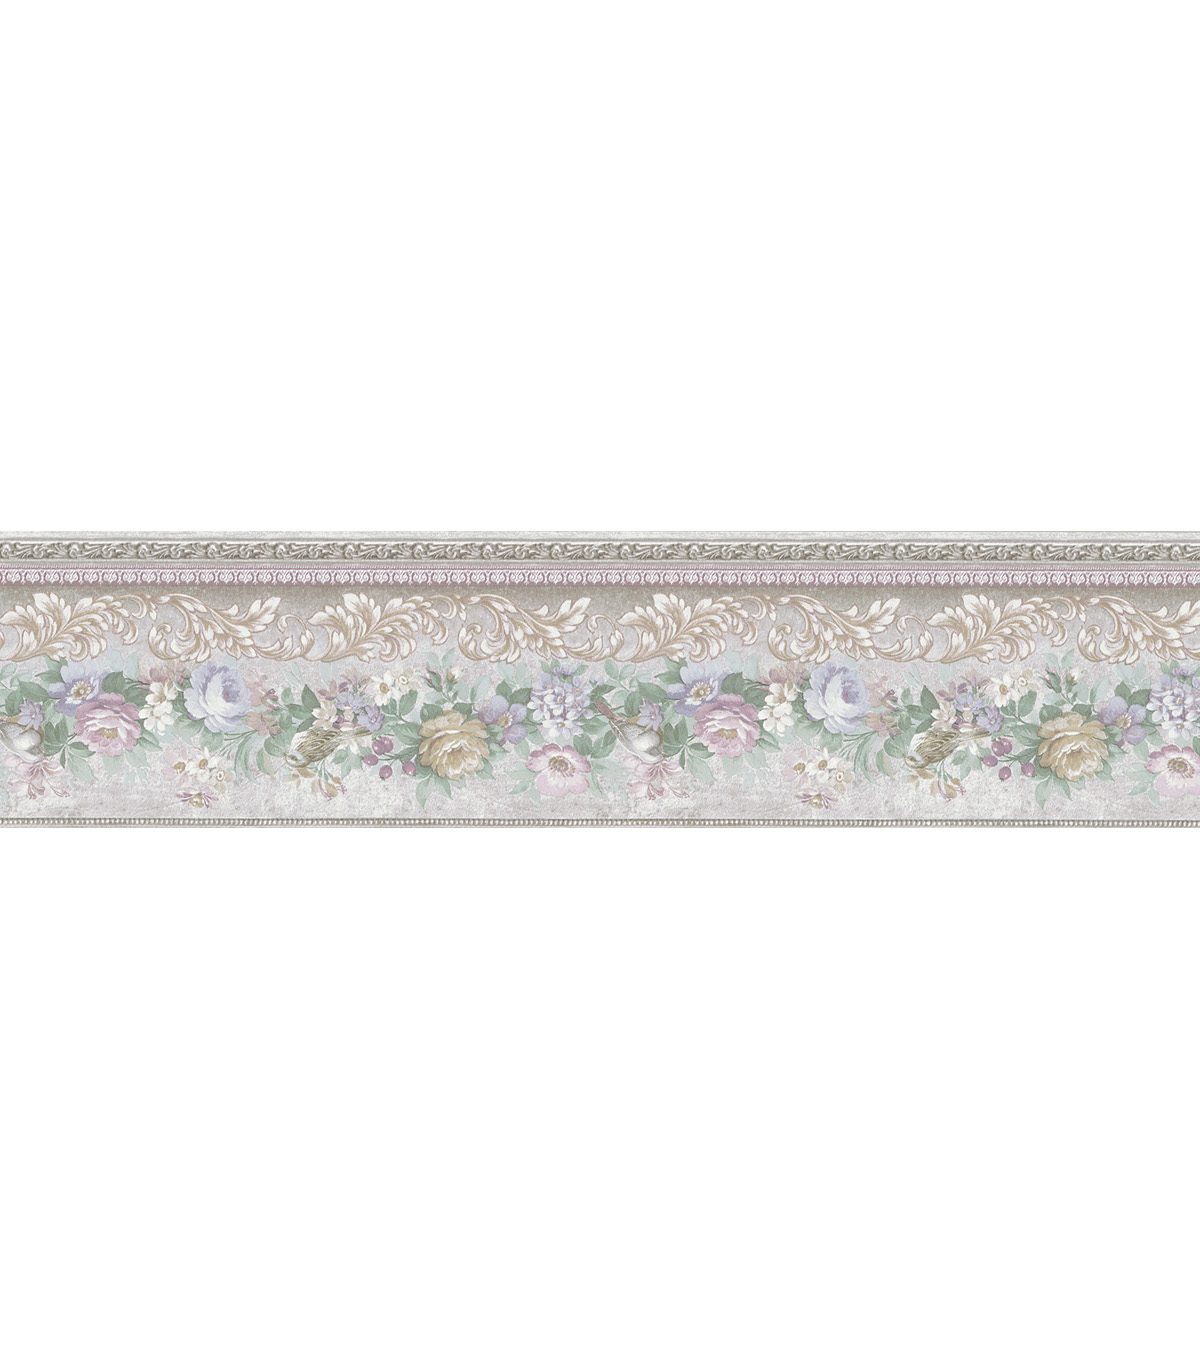 Birded Floral Scroll  Wallpaper Border, Multicolor